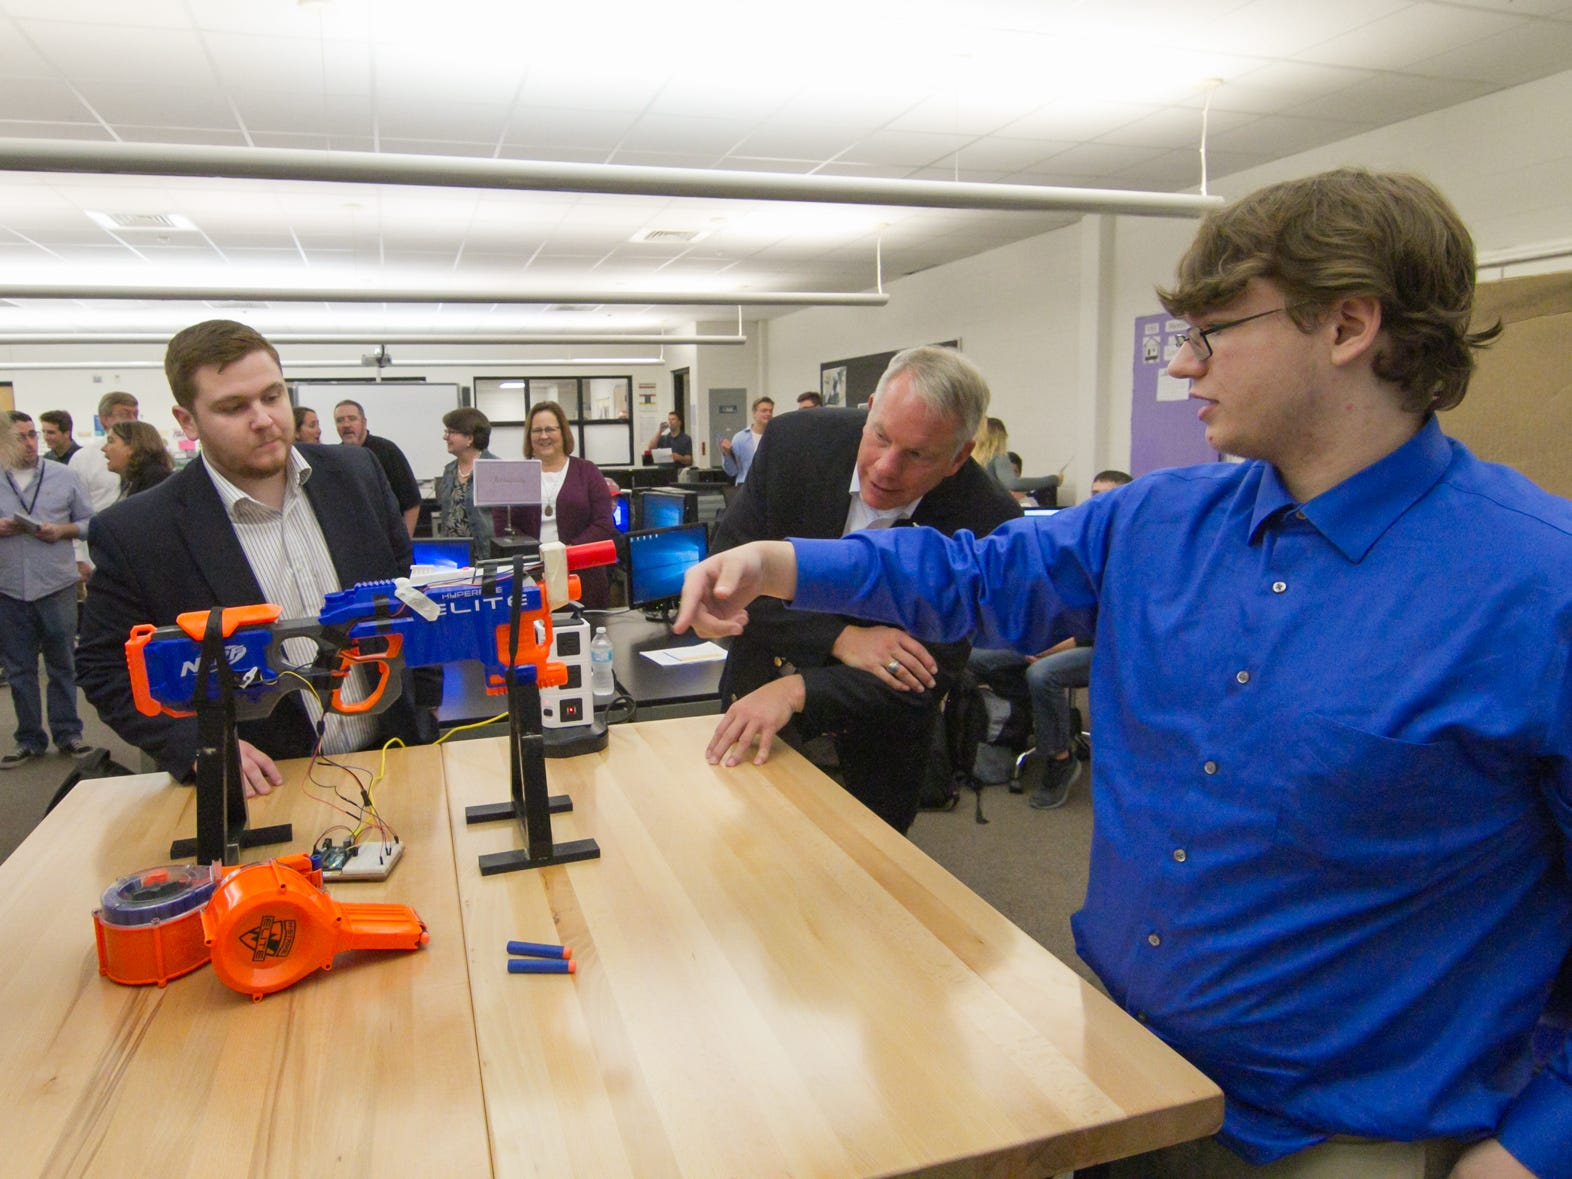 Pinckney Cyber Training Institute senior Jacob Velasco, left, explains the engineering behind the autonomous Nerf Blaster he designed which shoots a burst of Nerf bullets when someone passes in front of it. The demonstration was part of a tour for IBM executives of Pinckney's Cyber Training Institute Tuesday, Oct. 9, 2018.